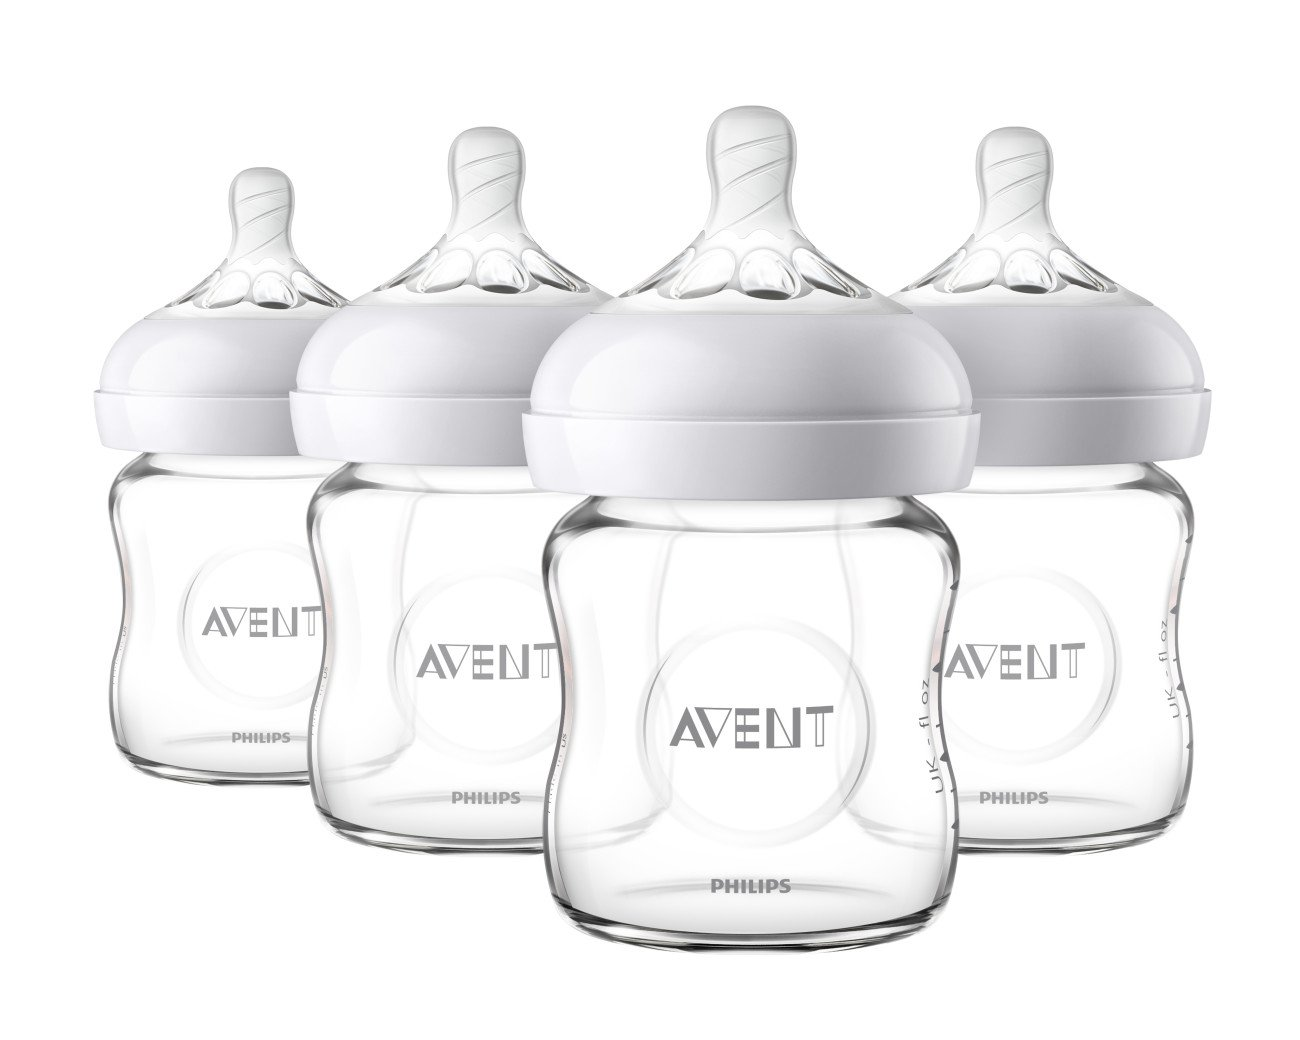 Philips Avent Natural Glass Baby Bottle, 4oz, 4pk, SCF701/47 by Philips AVENT